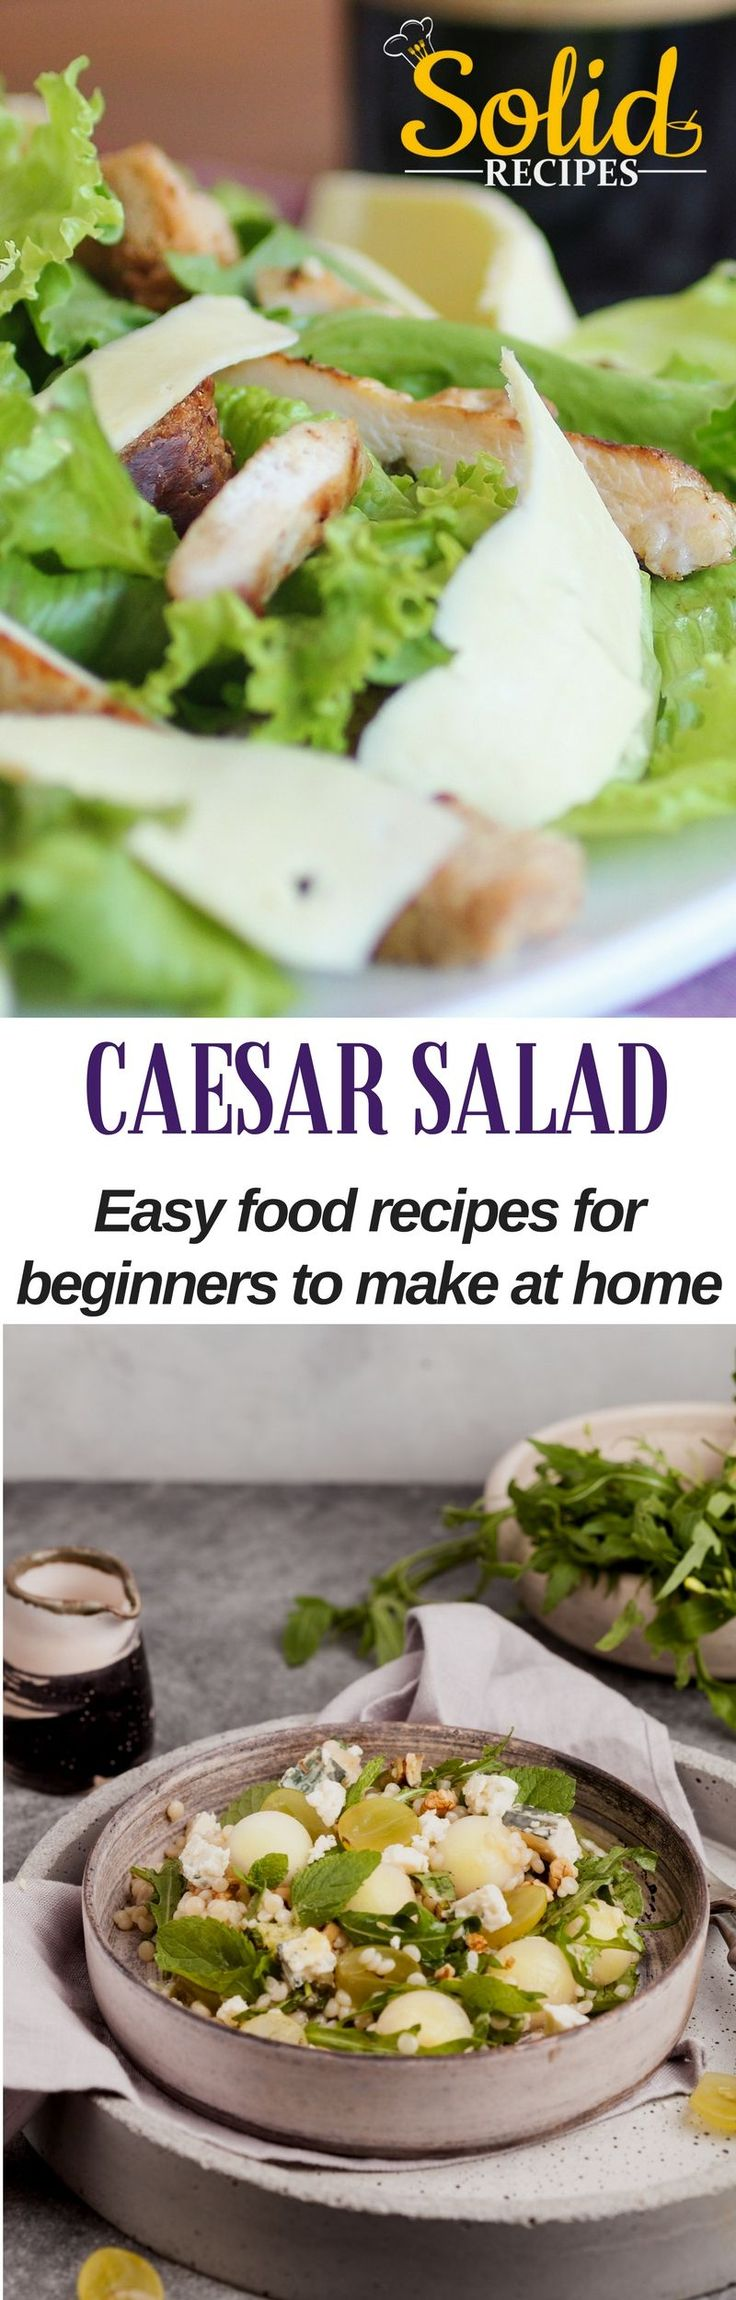 CAESAR SALAD – easy food recipes for beginners to make at home Not always the photos matched the recipe. Caesar salad dressing | Caesar salad recipe | Caesar salad dressing recipe | Caesar salad dressing homemade | Caesar salad dressing no anchovies |